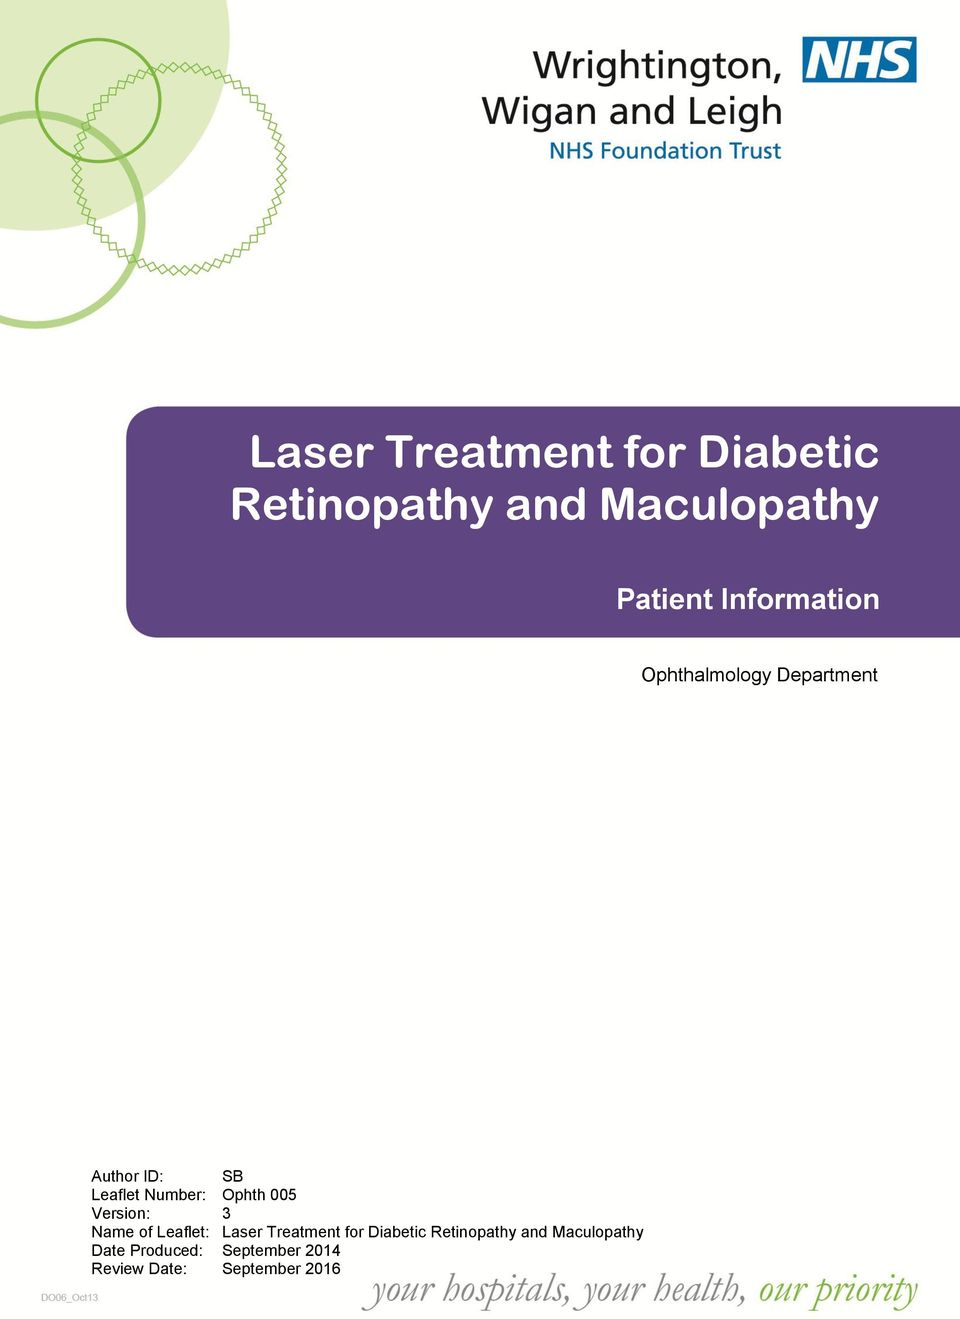 Leaflet: Laser Treatment for Diabetic Retinopathy and Maculopathy Date Produced: